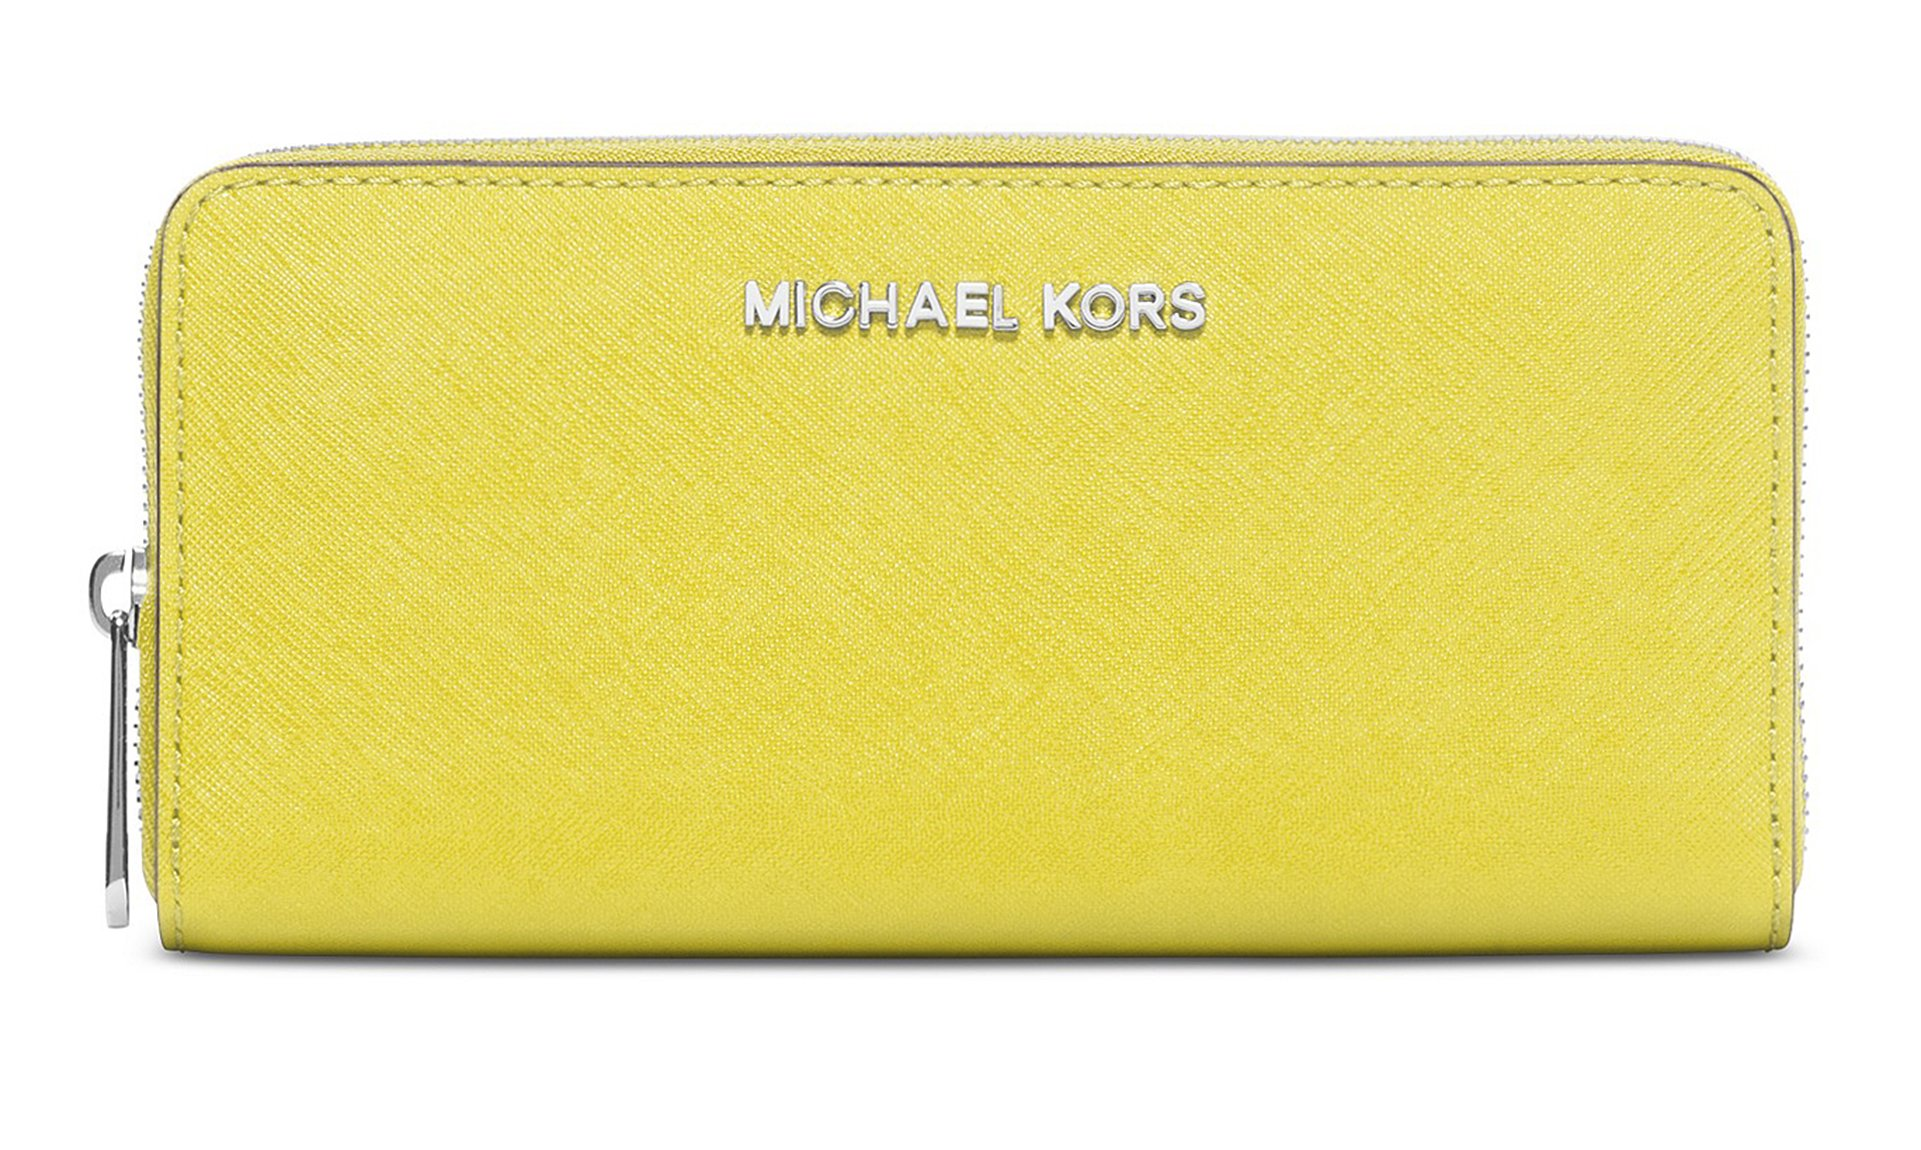 Michael Kors Jet Set Travel Canary Saffiano Leather Zip Around Continental Wallet by Michael Kors